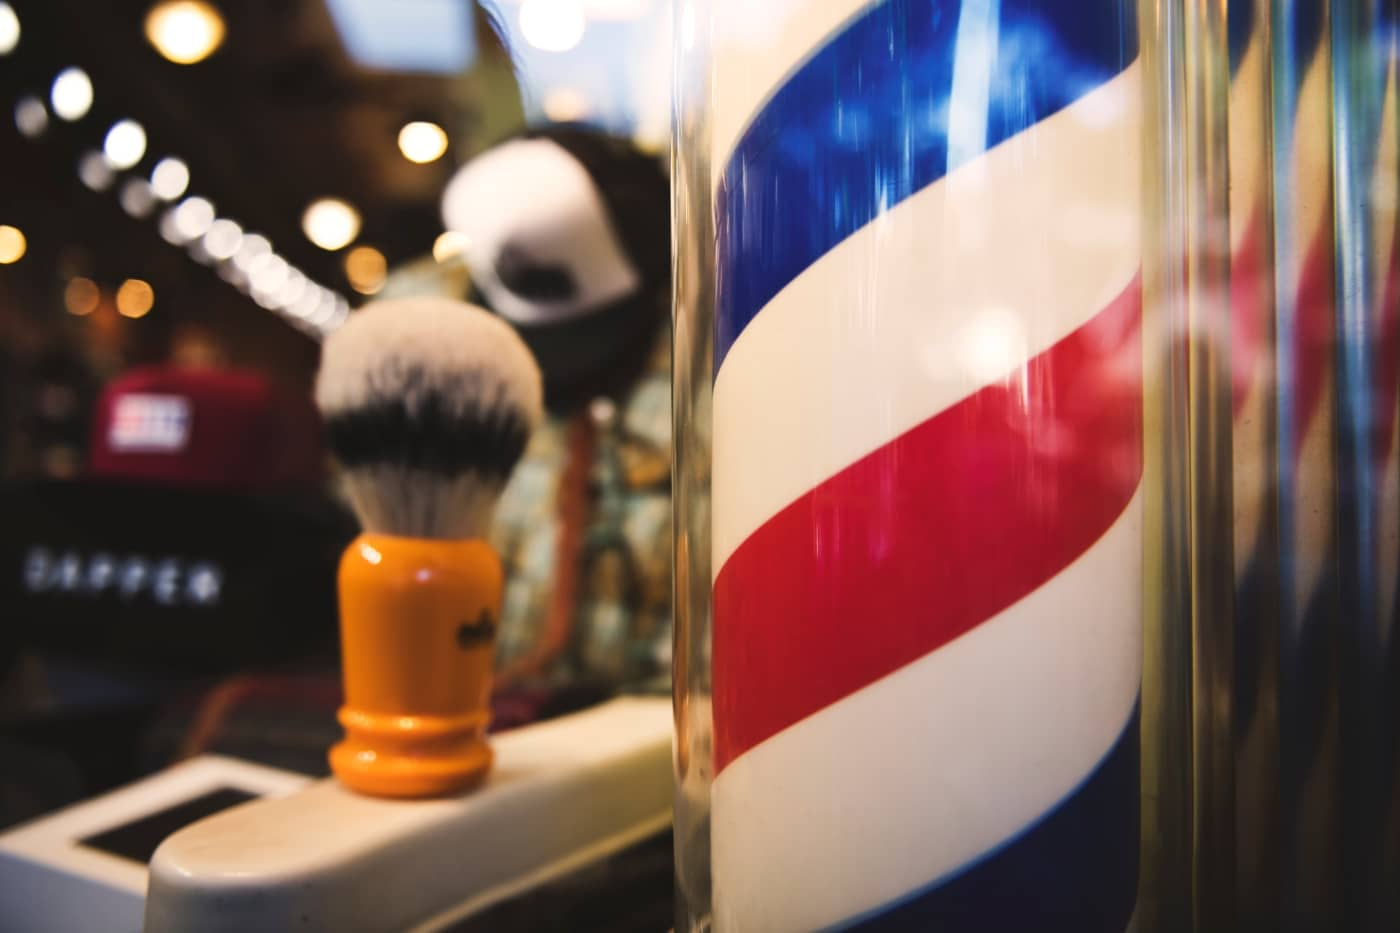 Origin and meaning of barber polles